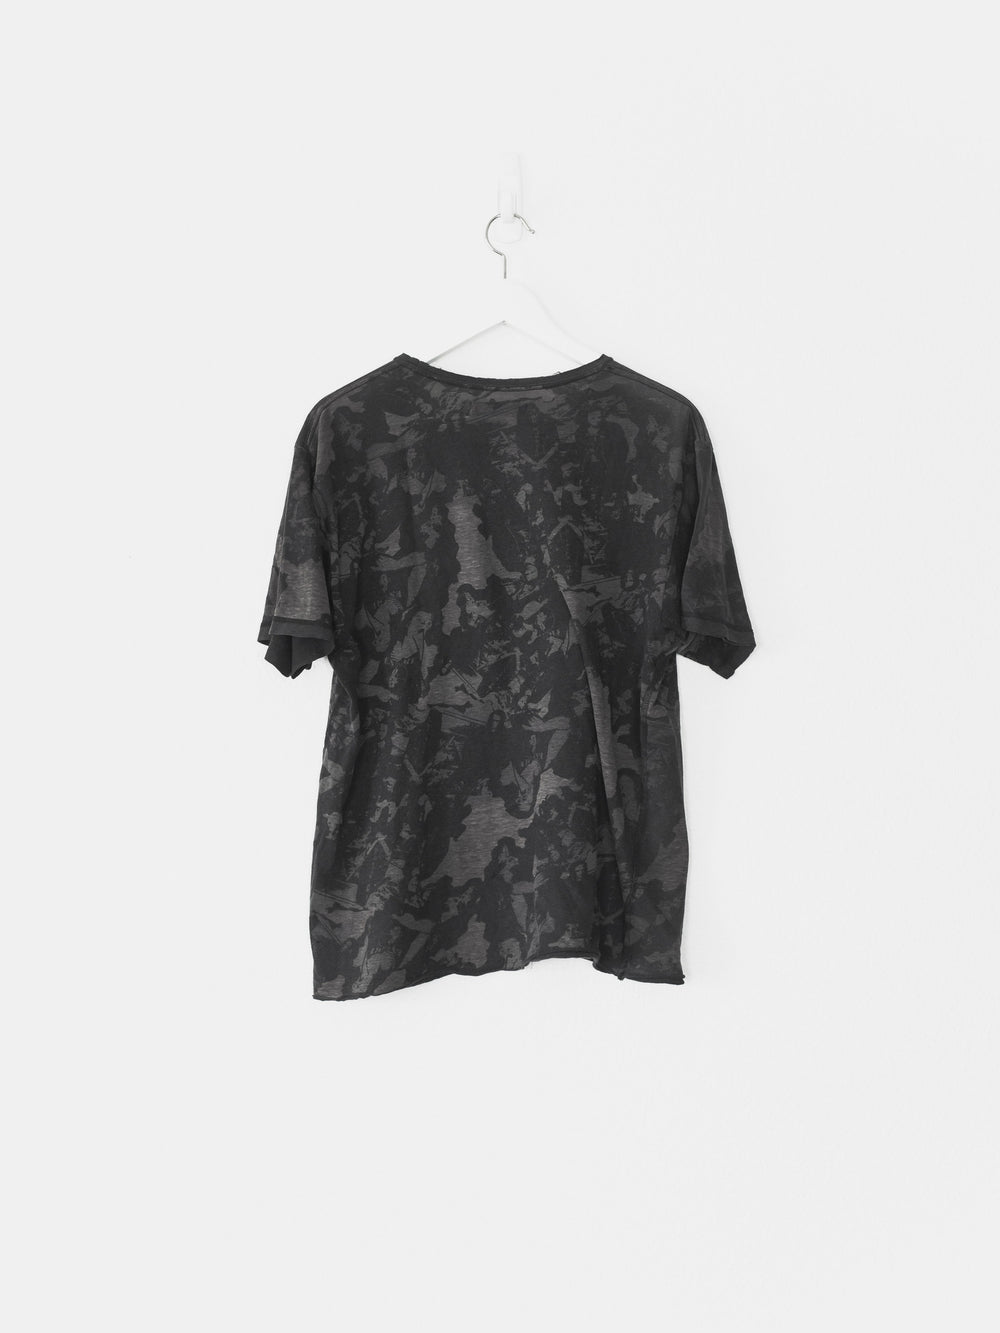 Undercover Scab Print Tee